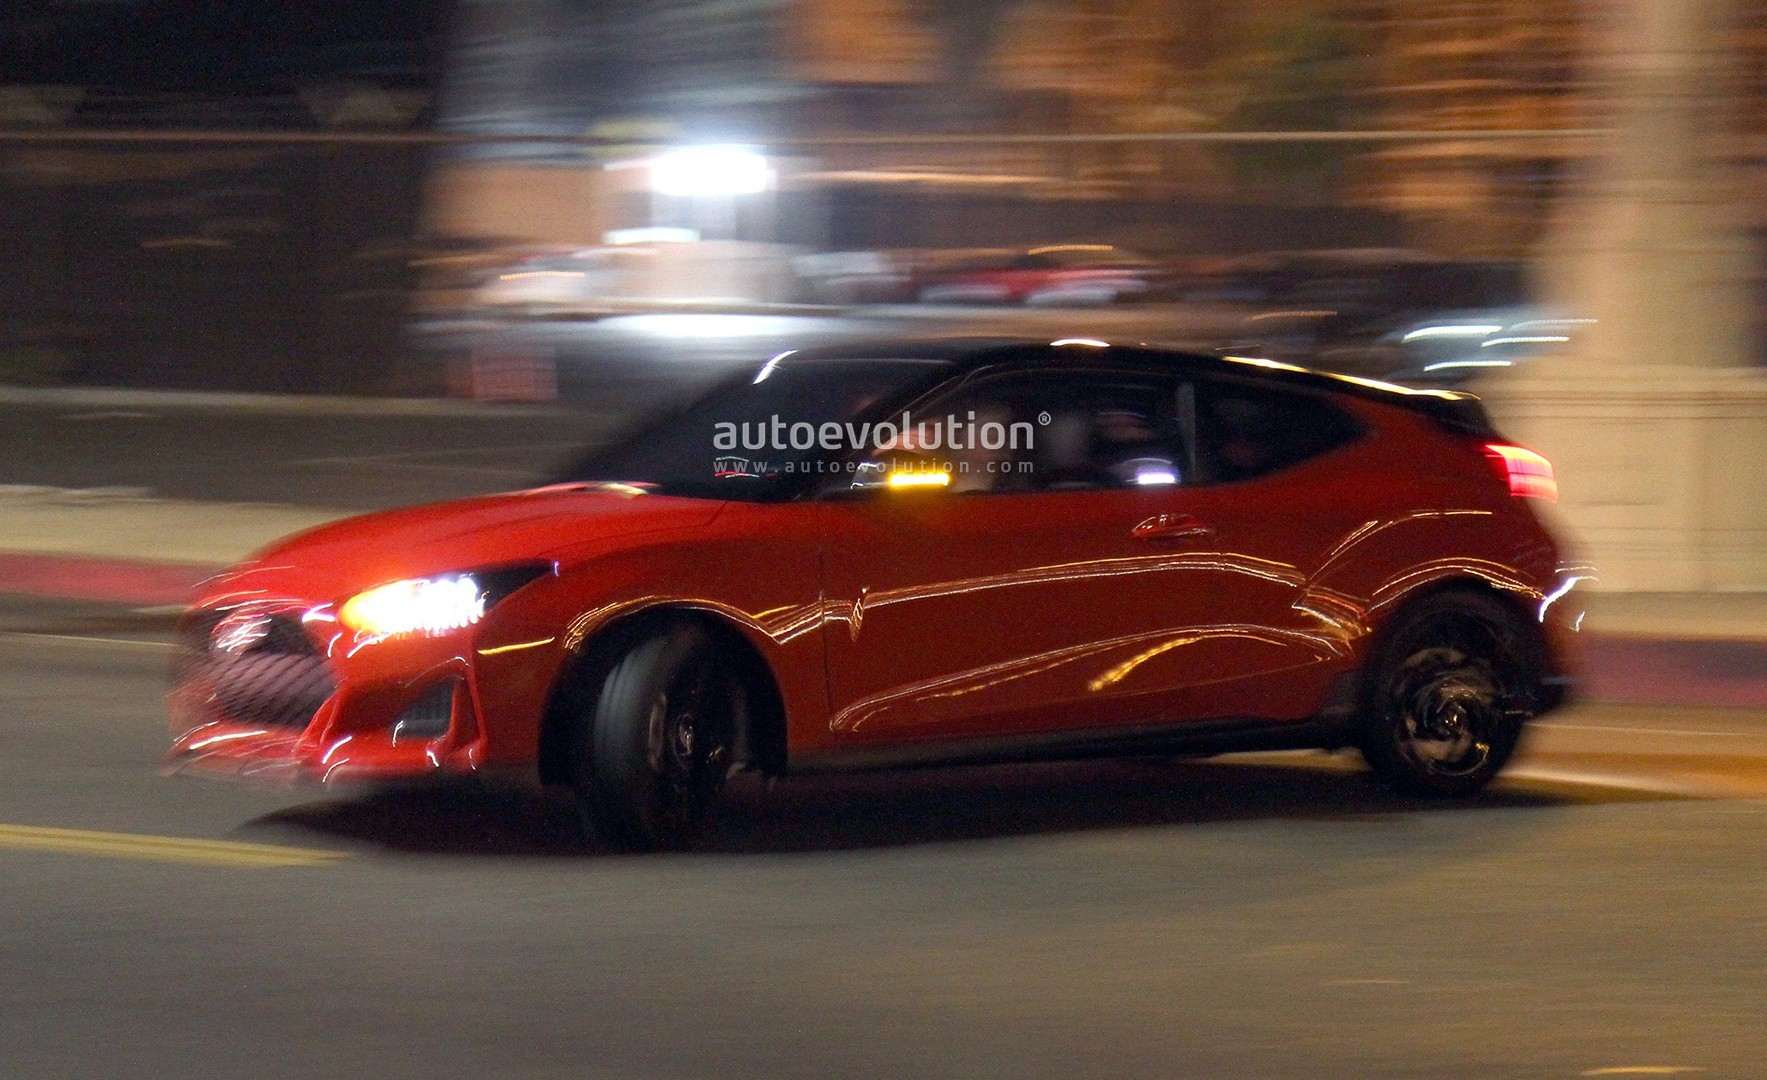 ... 2019 Hyundai Veloster Photographed Undisguised During Shoot ...